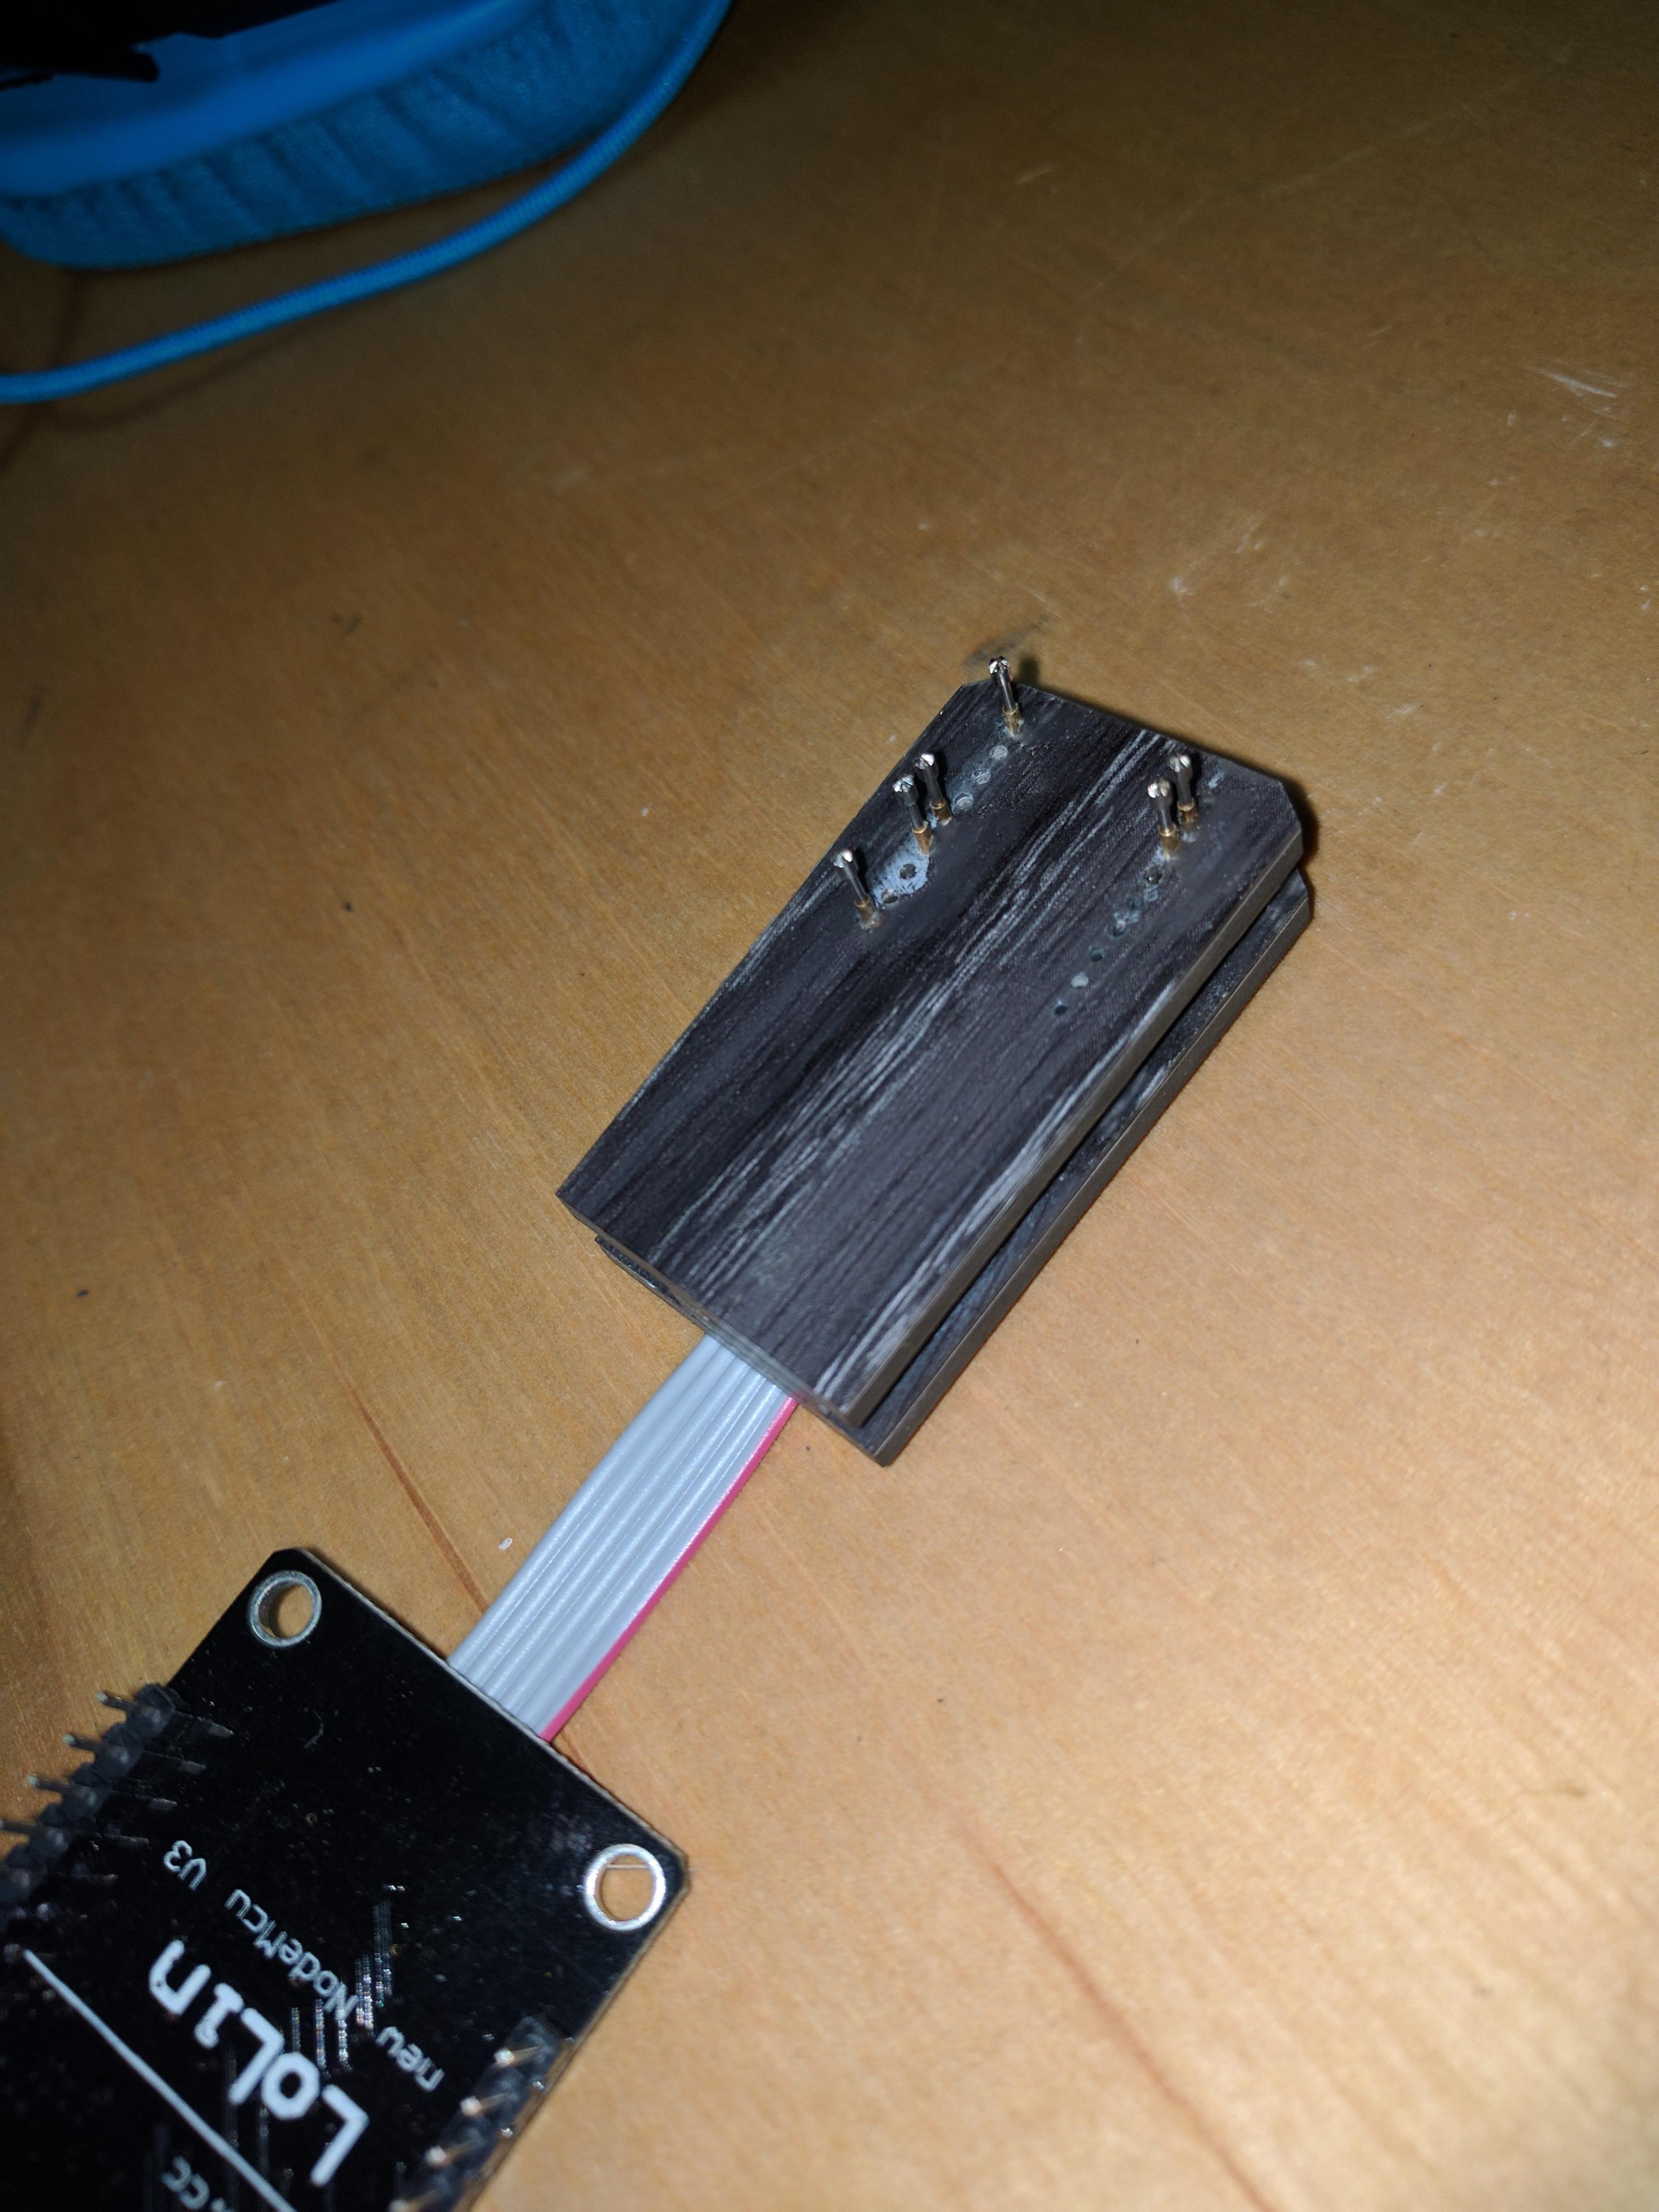 Cheap and polished ESP8266 Wifi Outlet   EchoTwek